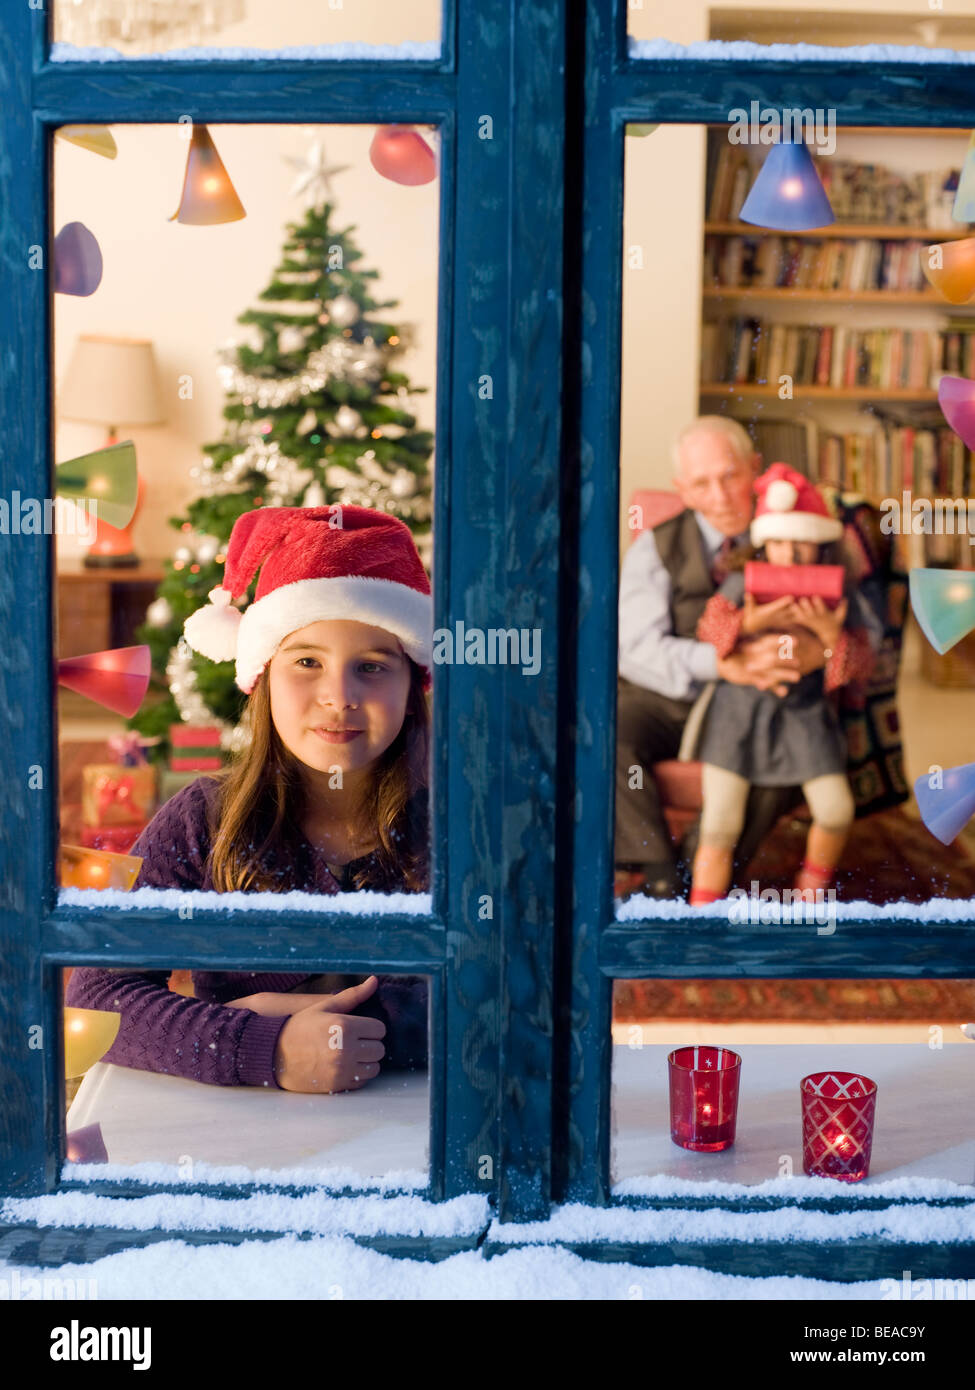 Child looking outside on Christmas eve. - Stock Image